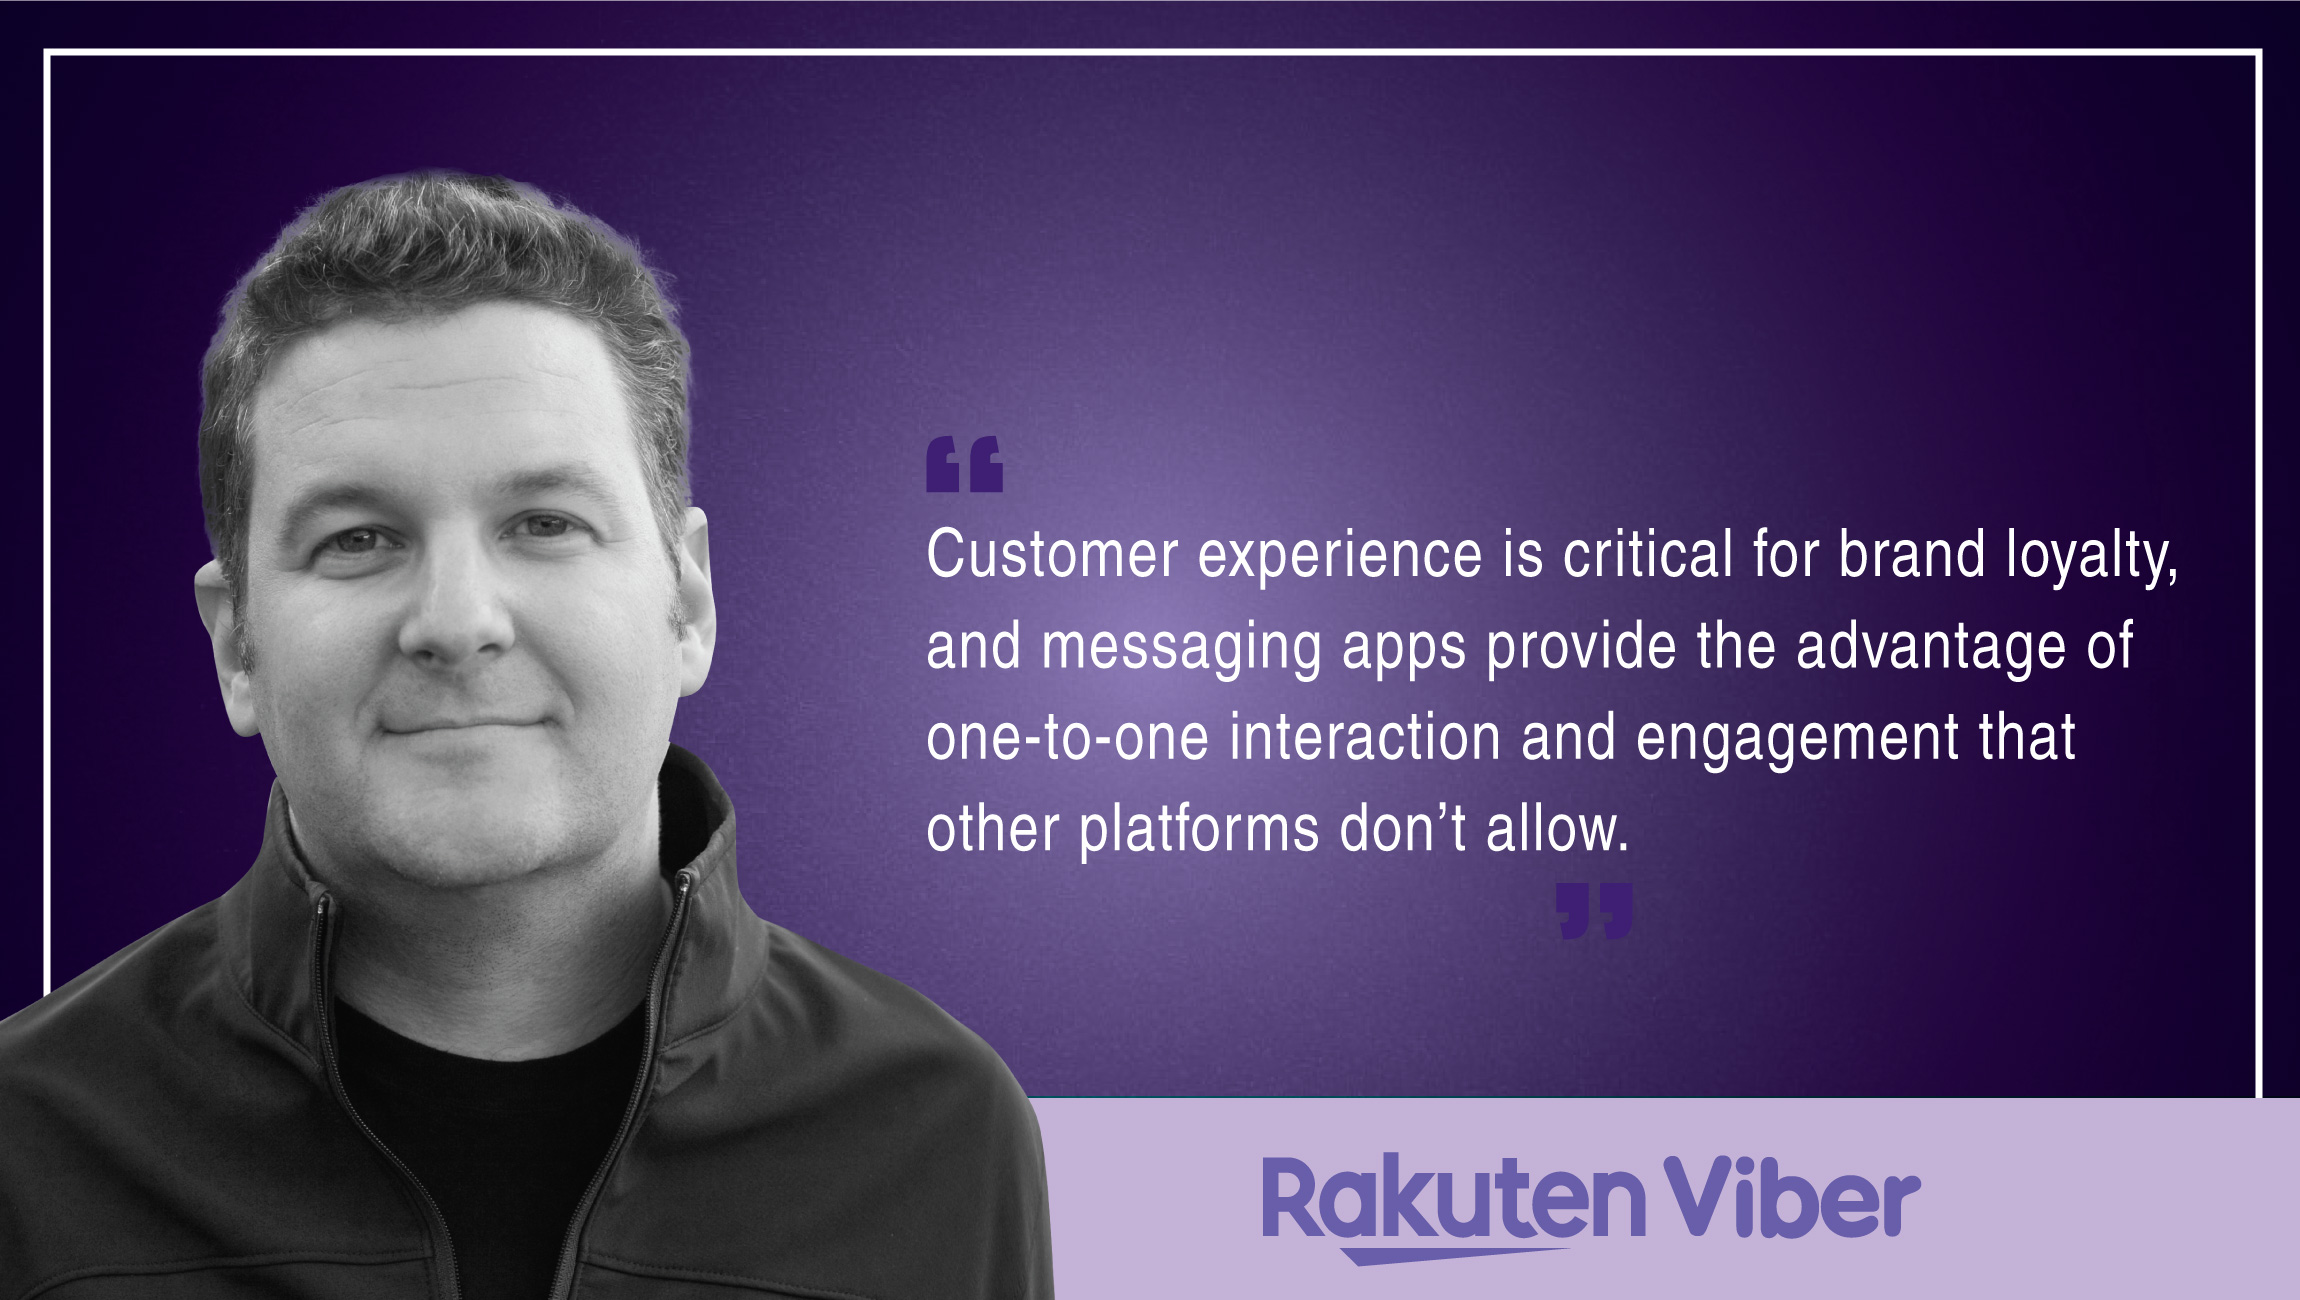 TechBytes with Zephrin Lasker, VP of E-Commerce at Rakuten Viber